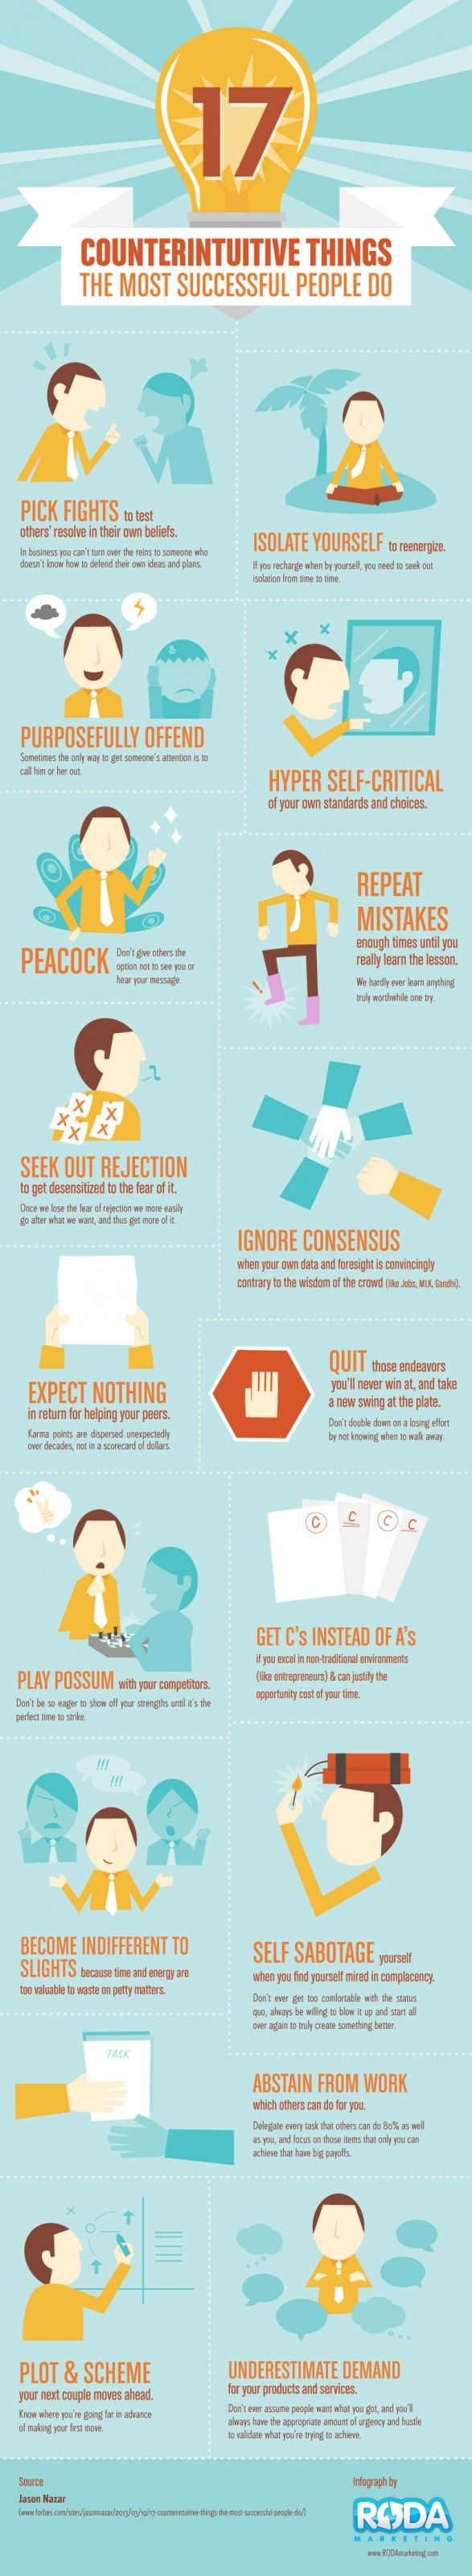 17 Counterintuitive Things Successful People Do